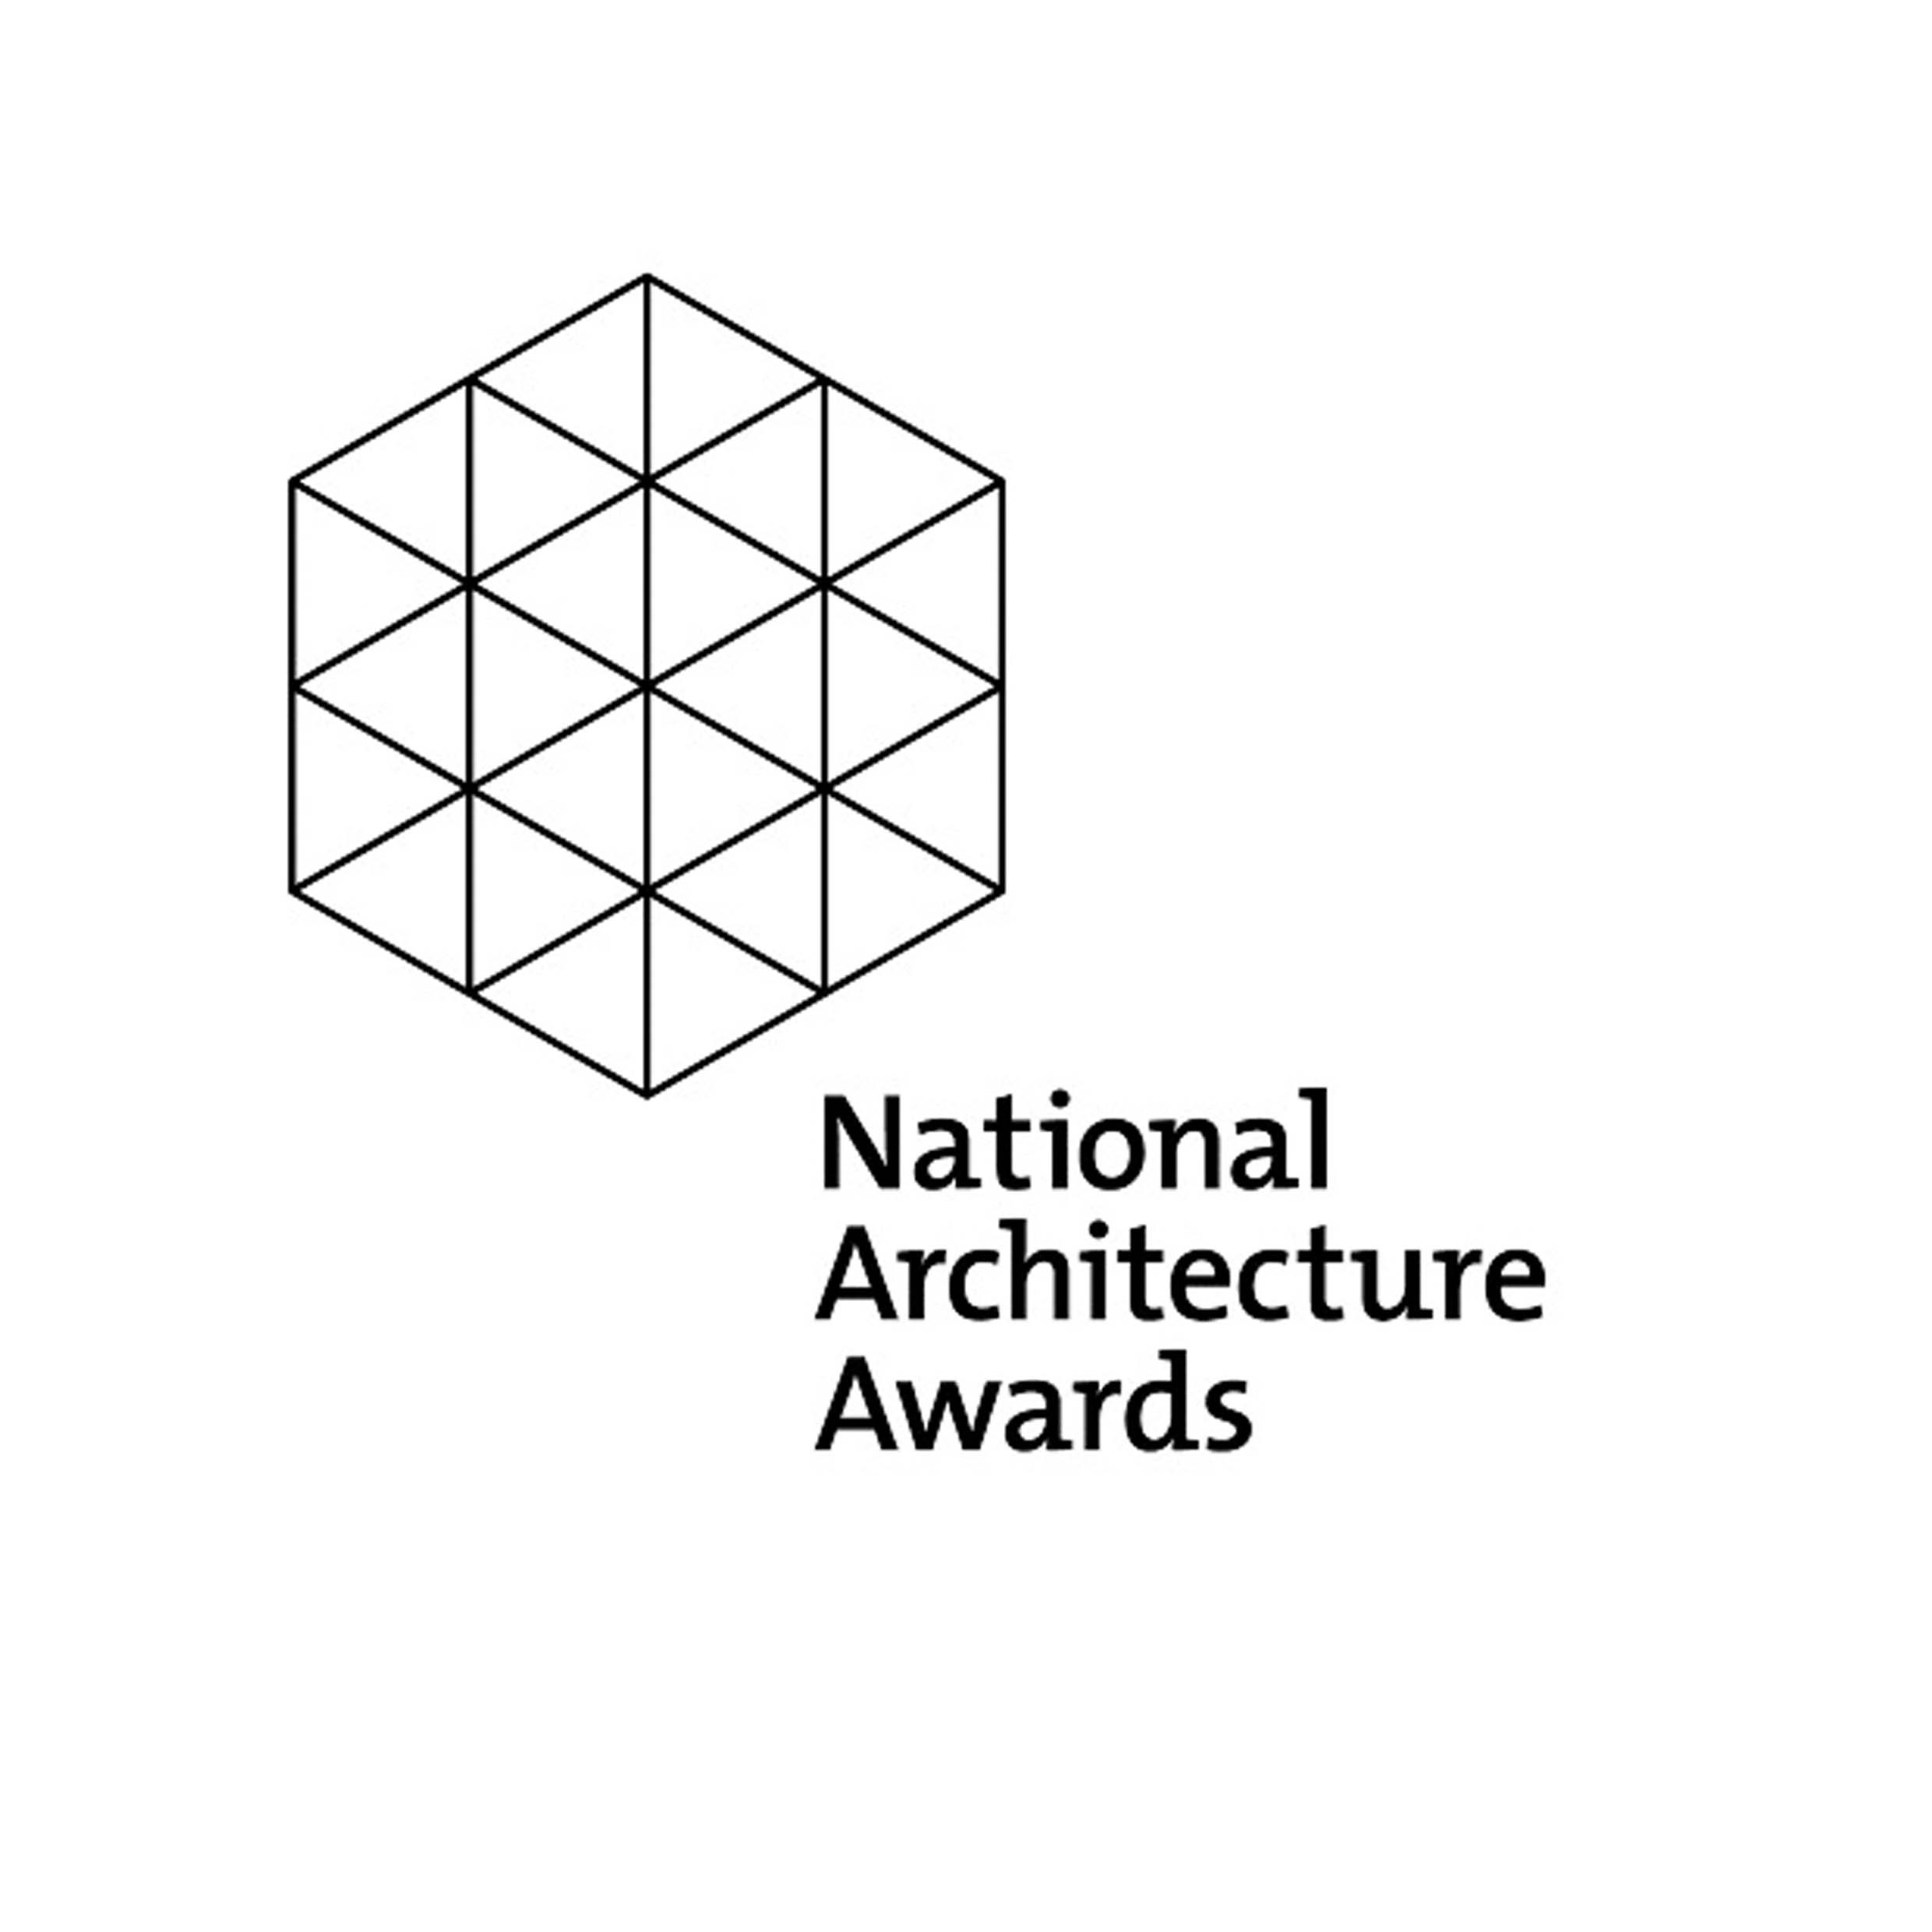 national+arch+award+news.jpg